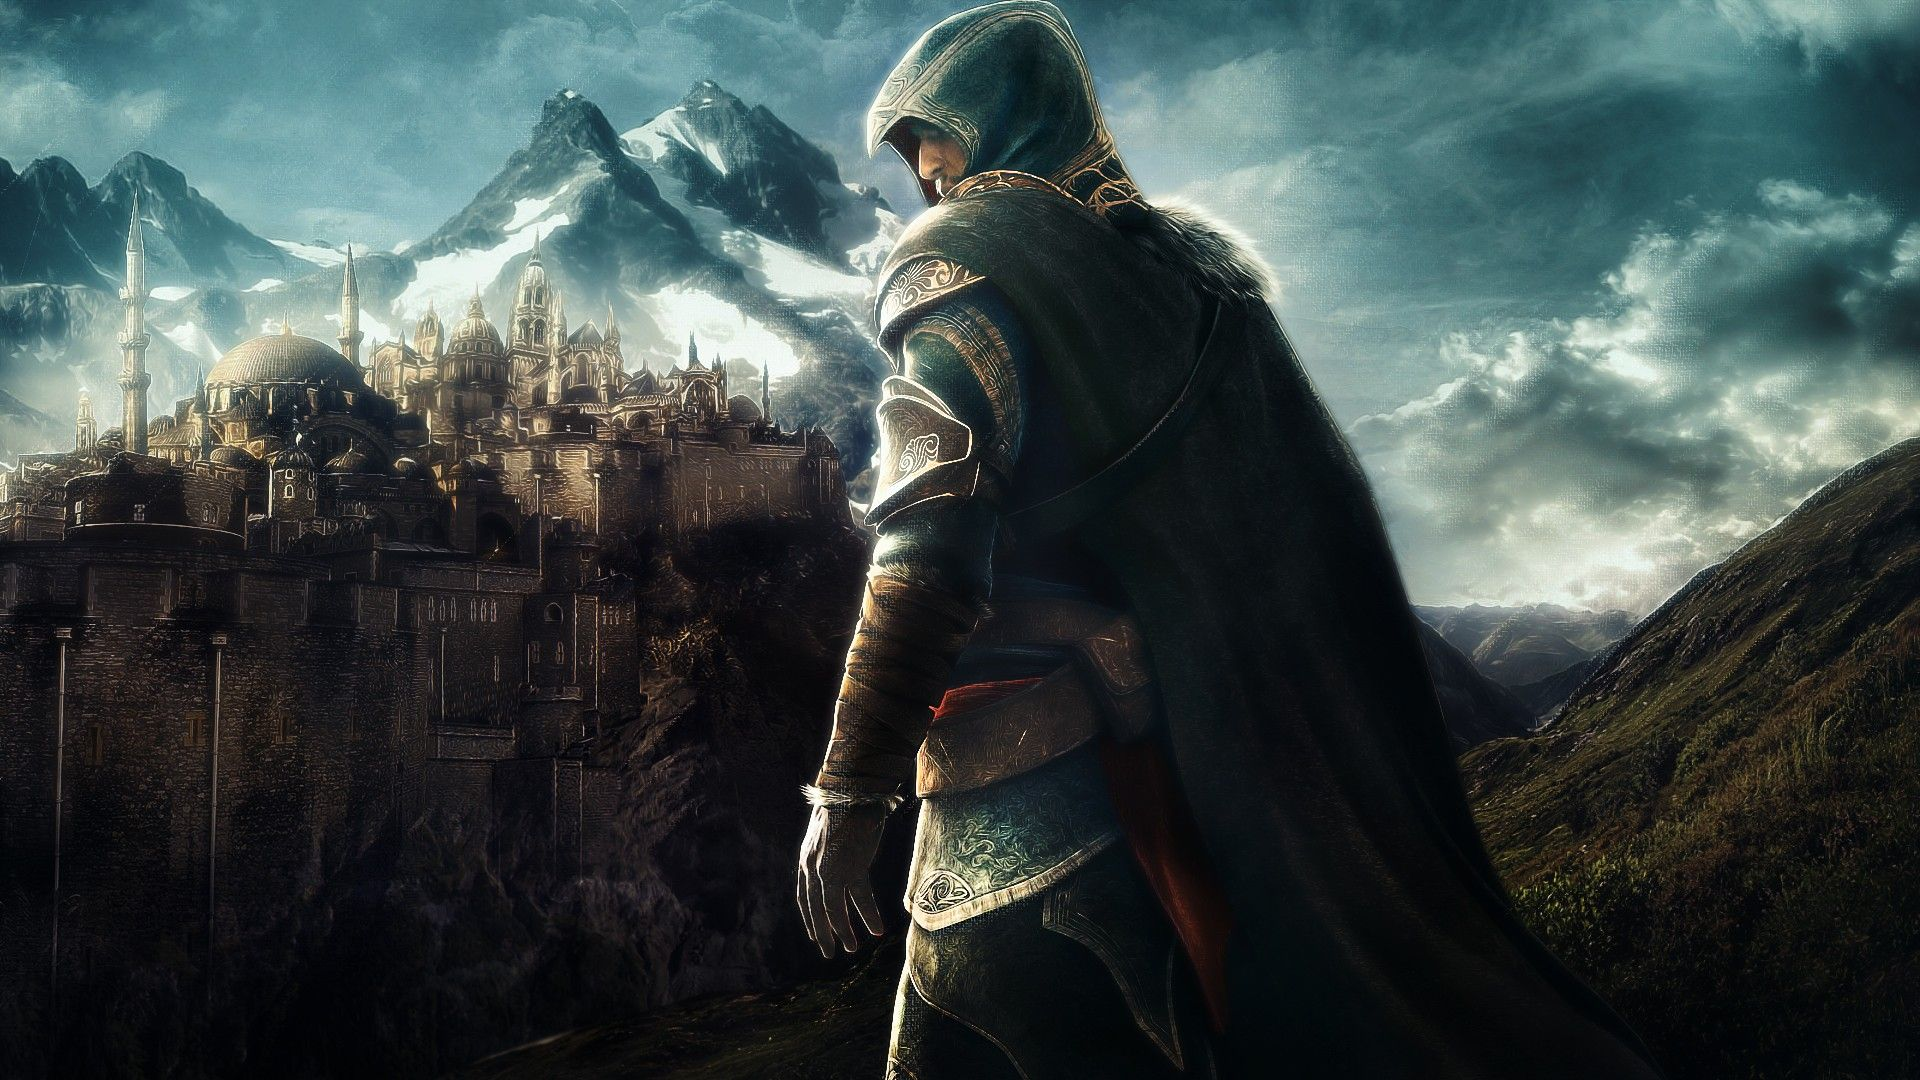 HD Game Wallpapers 1080p 1920x1080